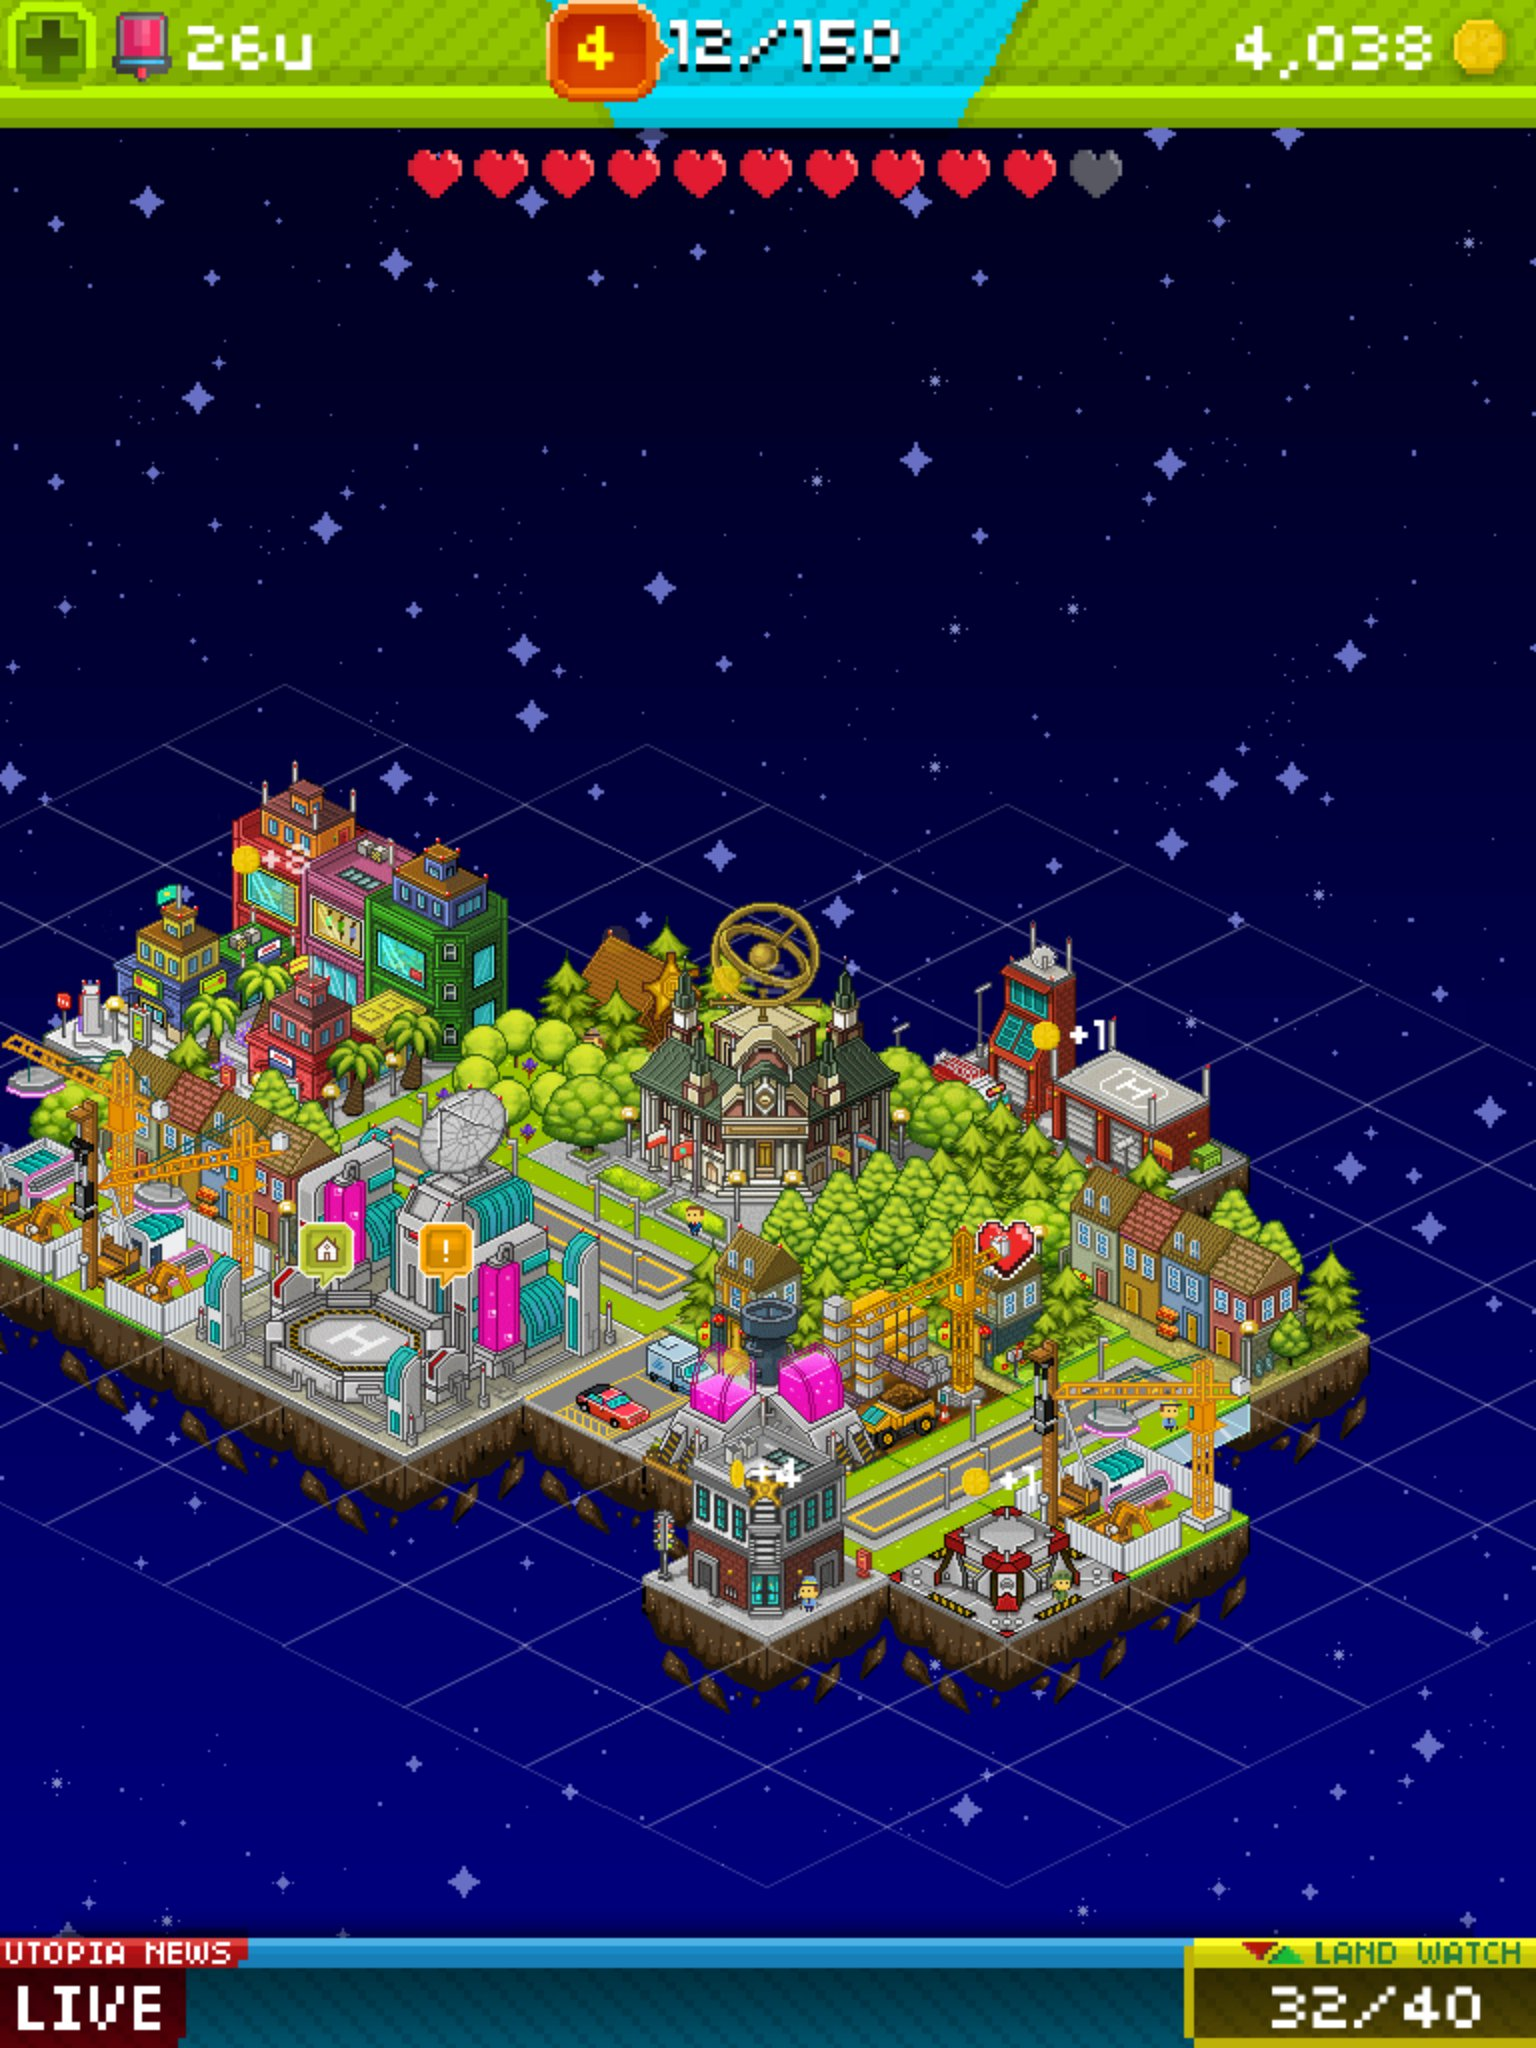 LambdaMu Games updates Pixel People with new theme parks, jobs, and Valentine's Day romance